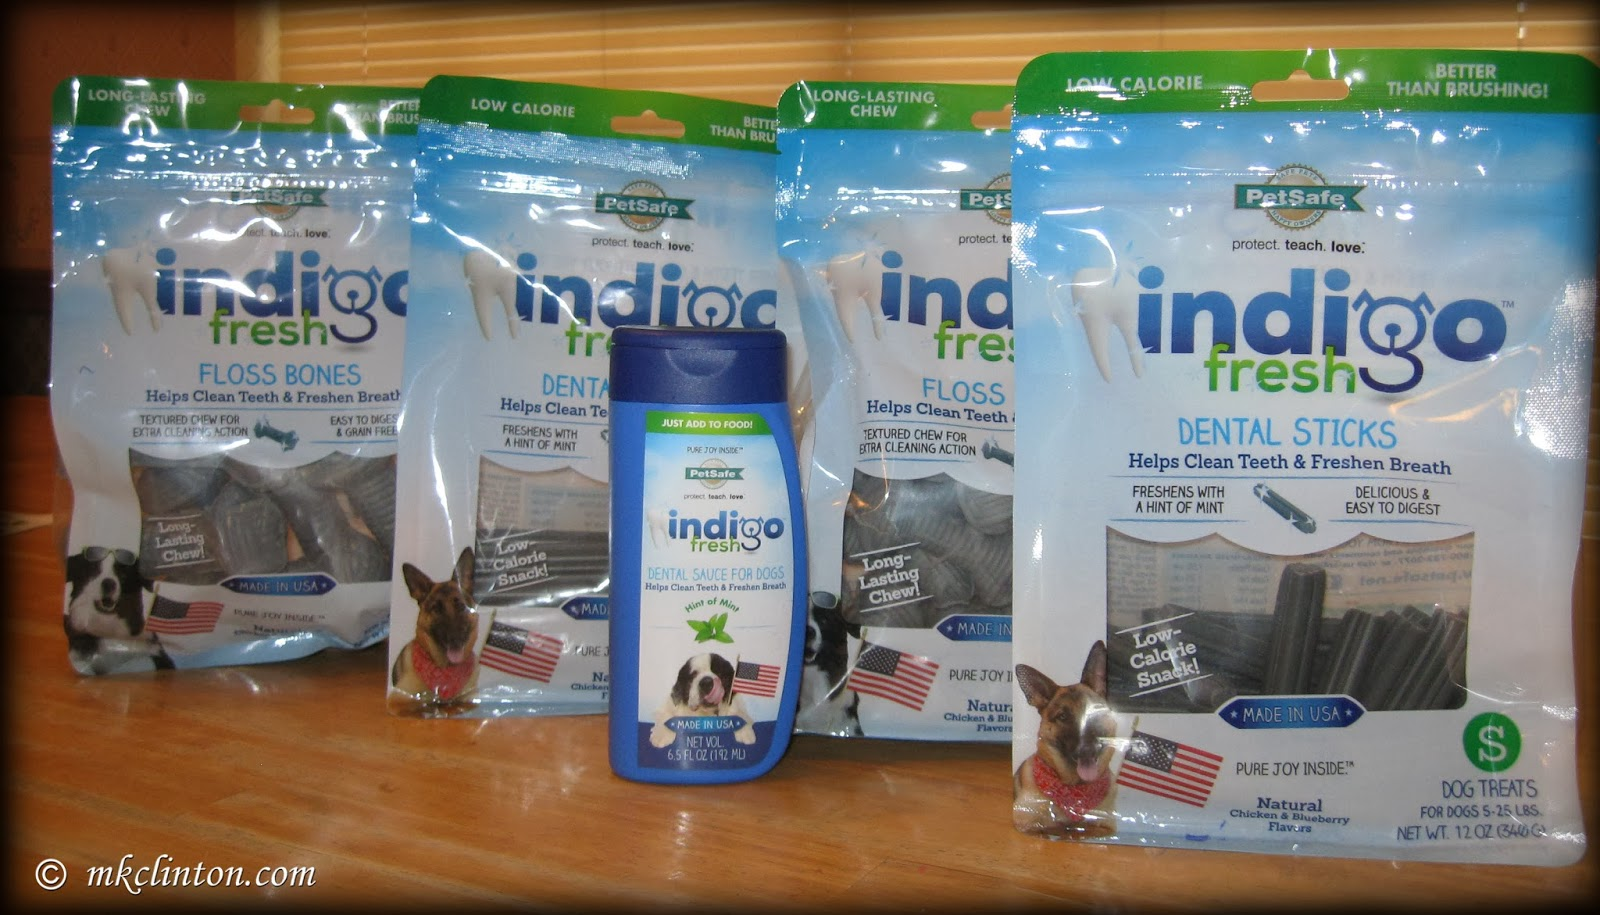 Indigo dog dental treats by PetSafe